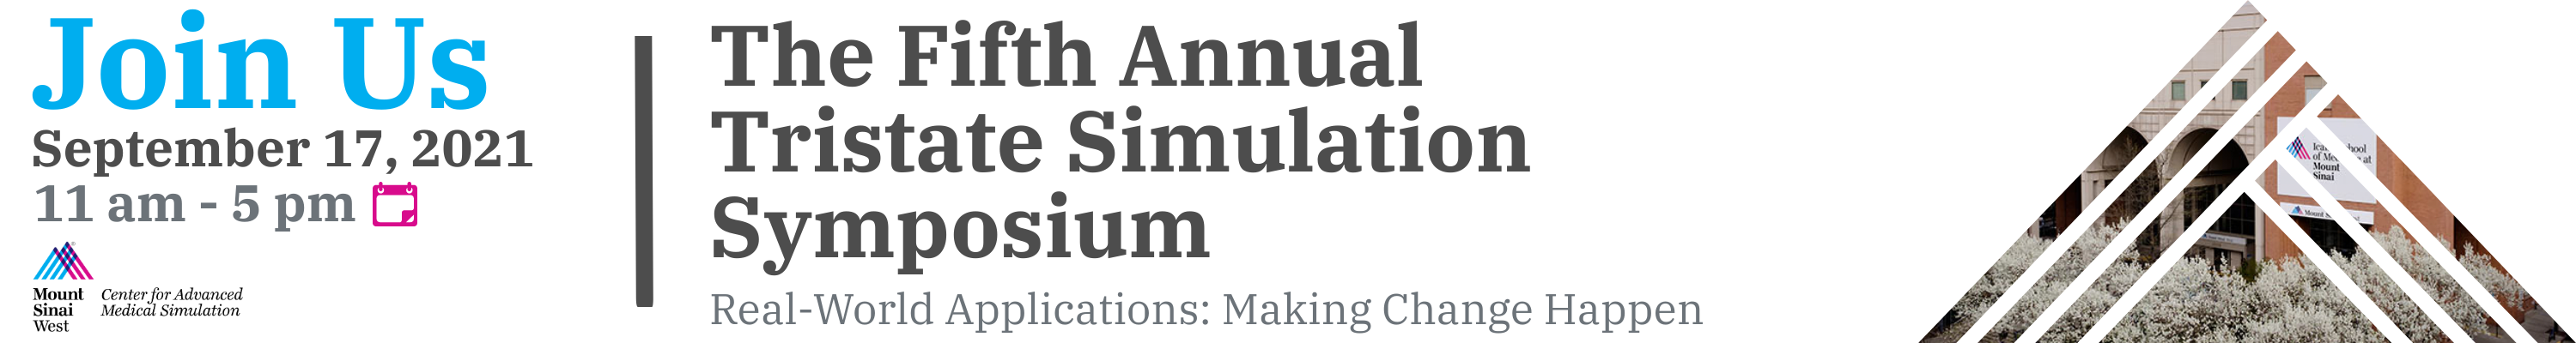 The Fifth Annual Tristate Regional Simulation Symposium: Real-World Applications: Making Change Happen Banner